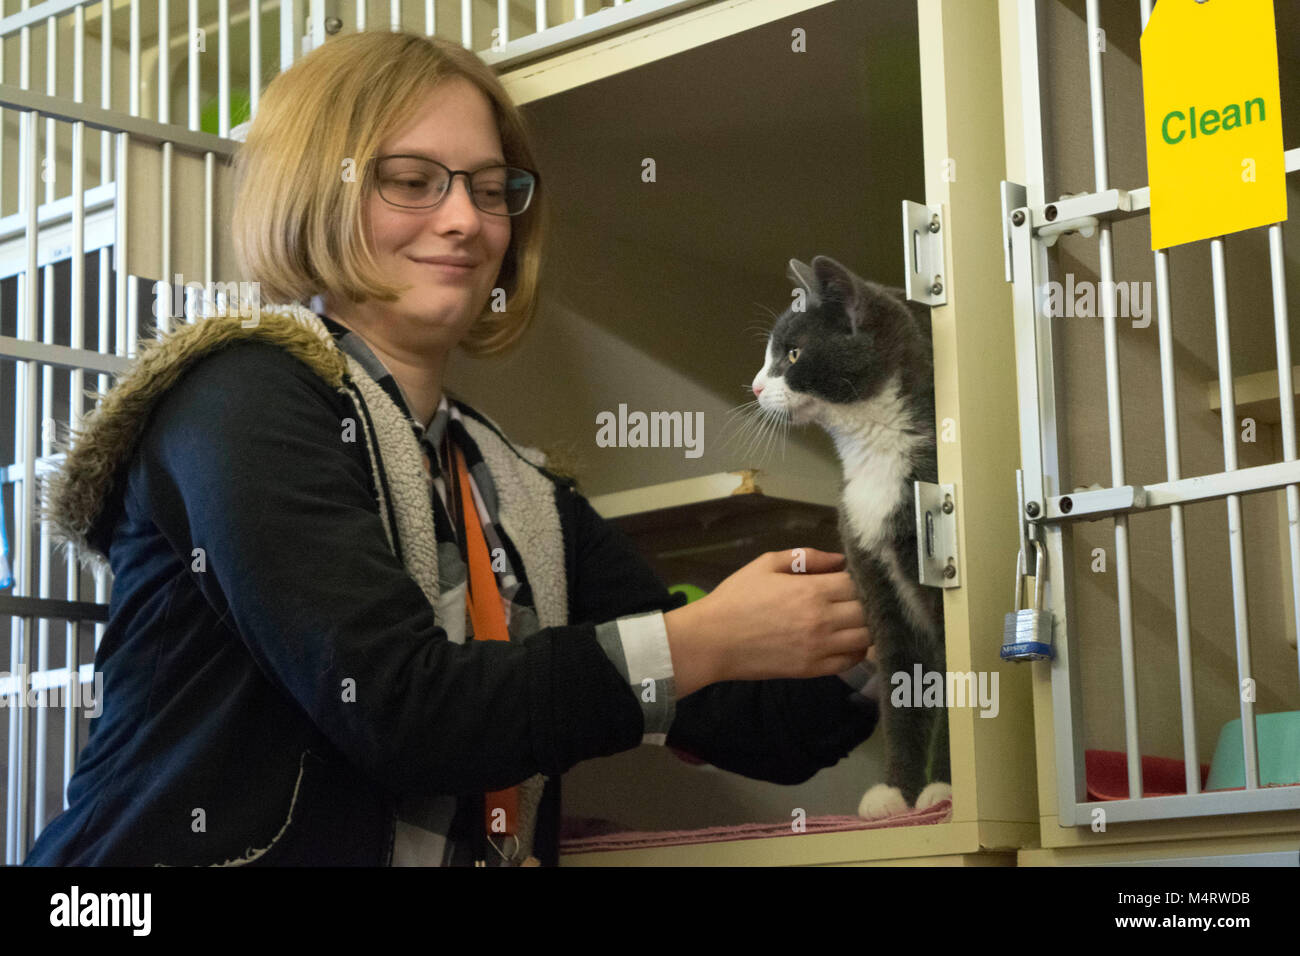 A volunteer pets a kitten at the local animal shelter. - Stock Image